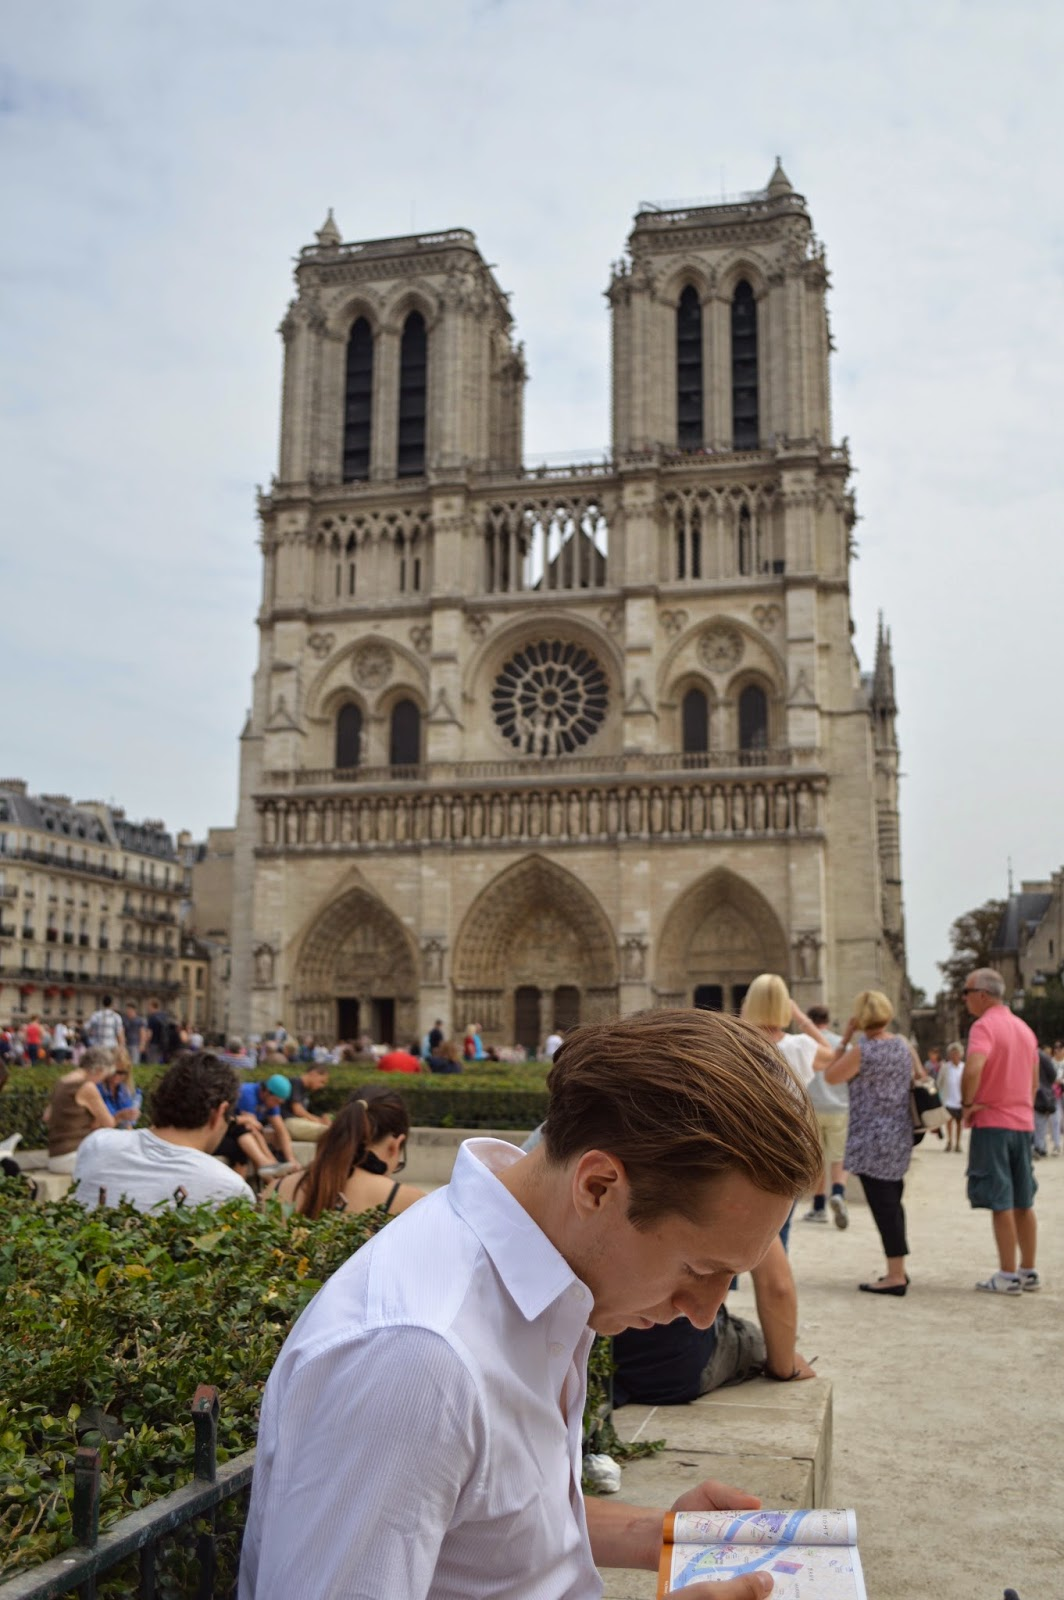 David reading a Paris guide in front of the Notre-Dame Cathedral.